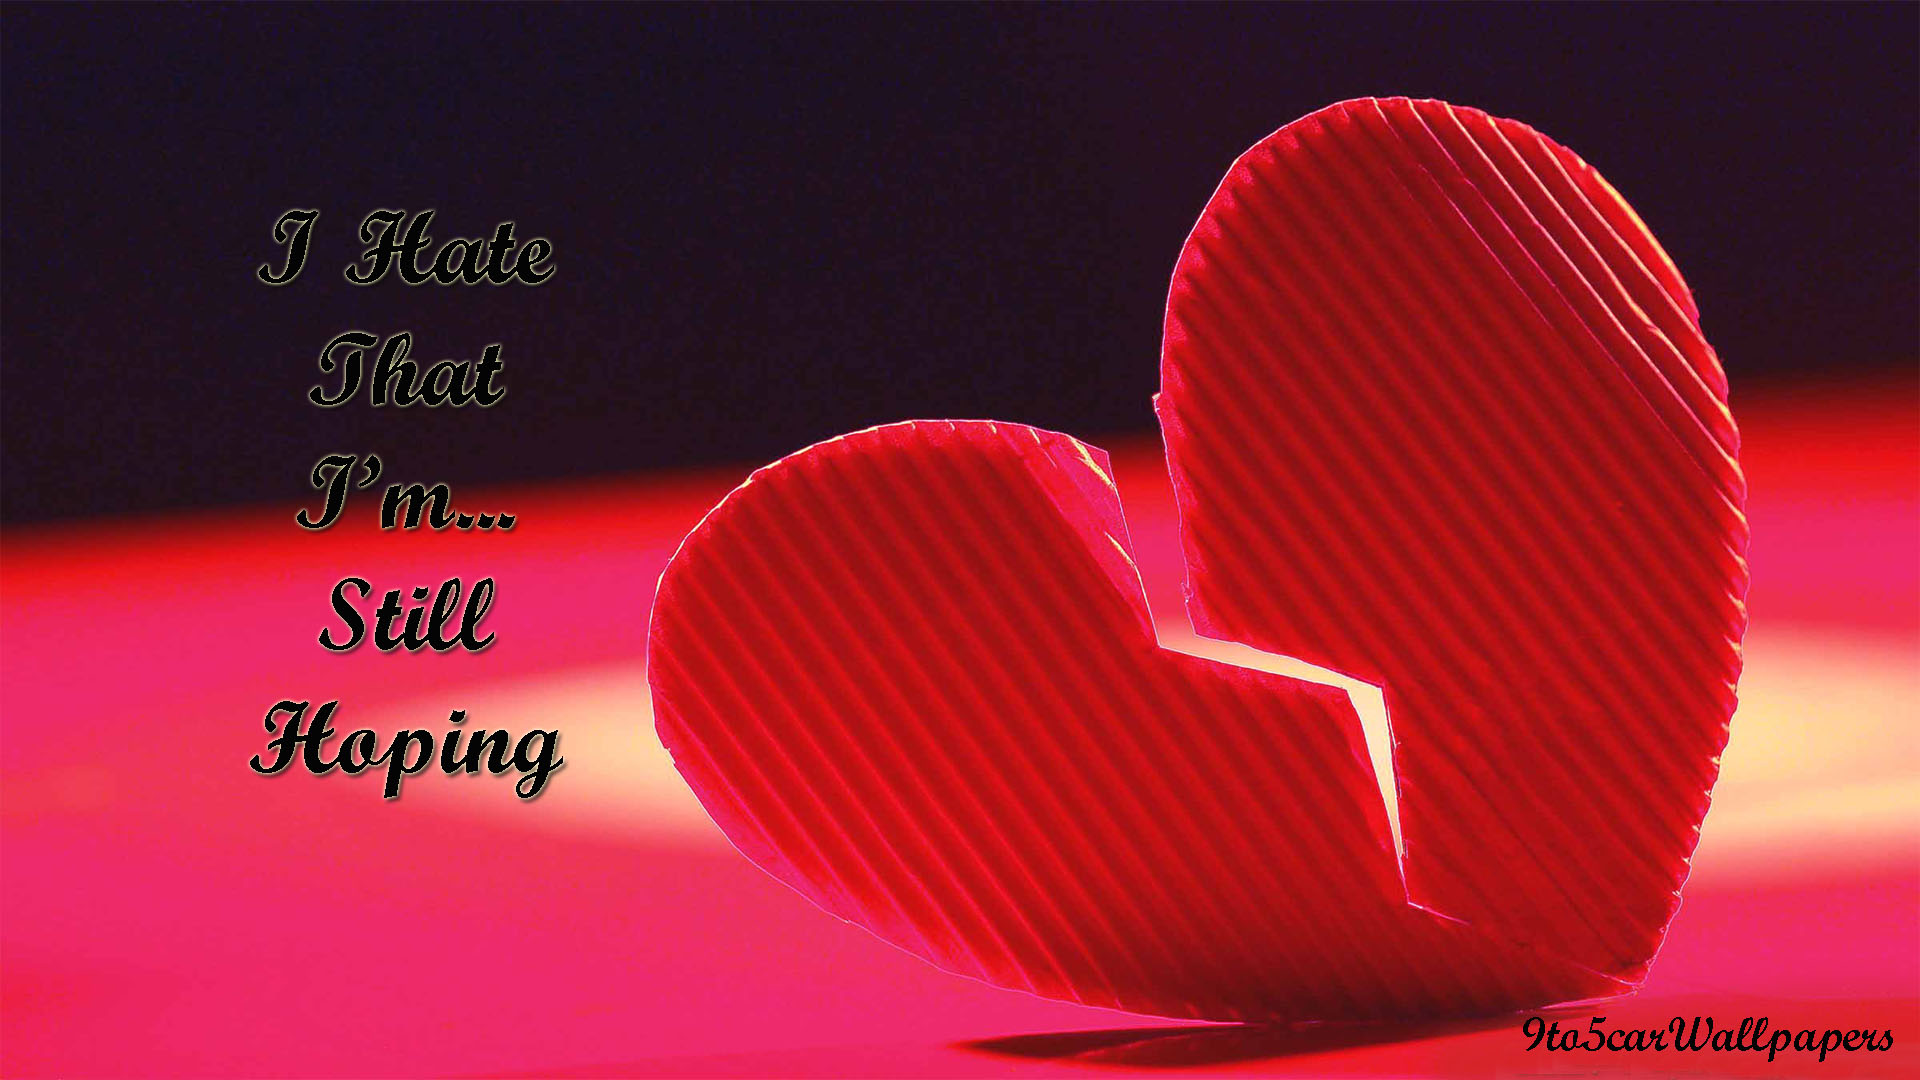 Broken Heart Sad Quotes With Wallpapers Images Hd 2016: Feeling Sad Images Free Download